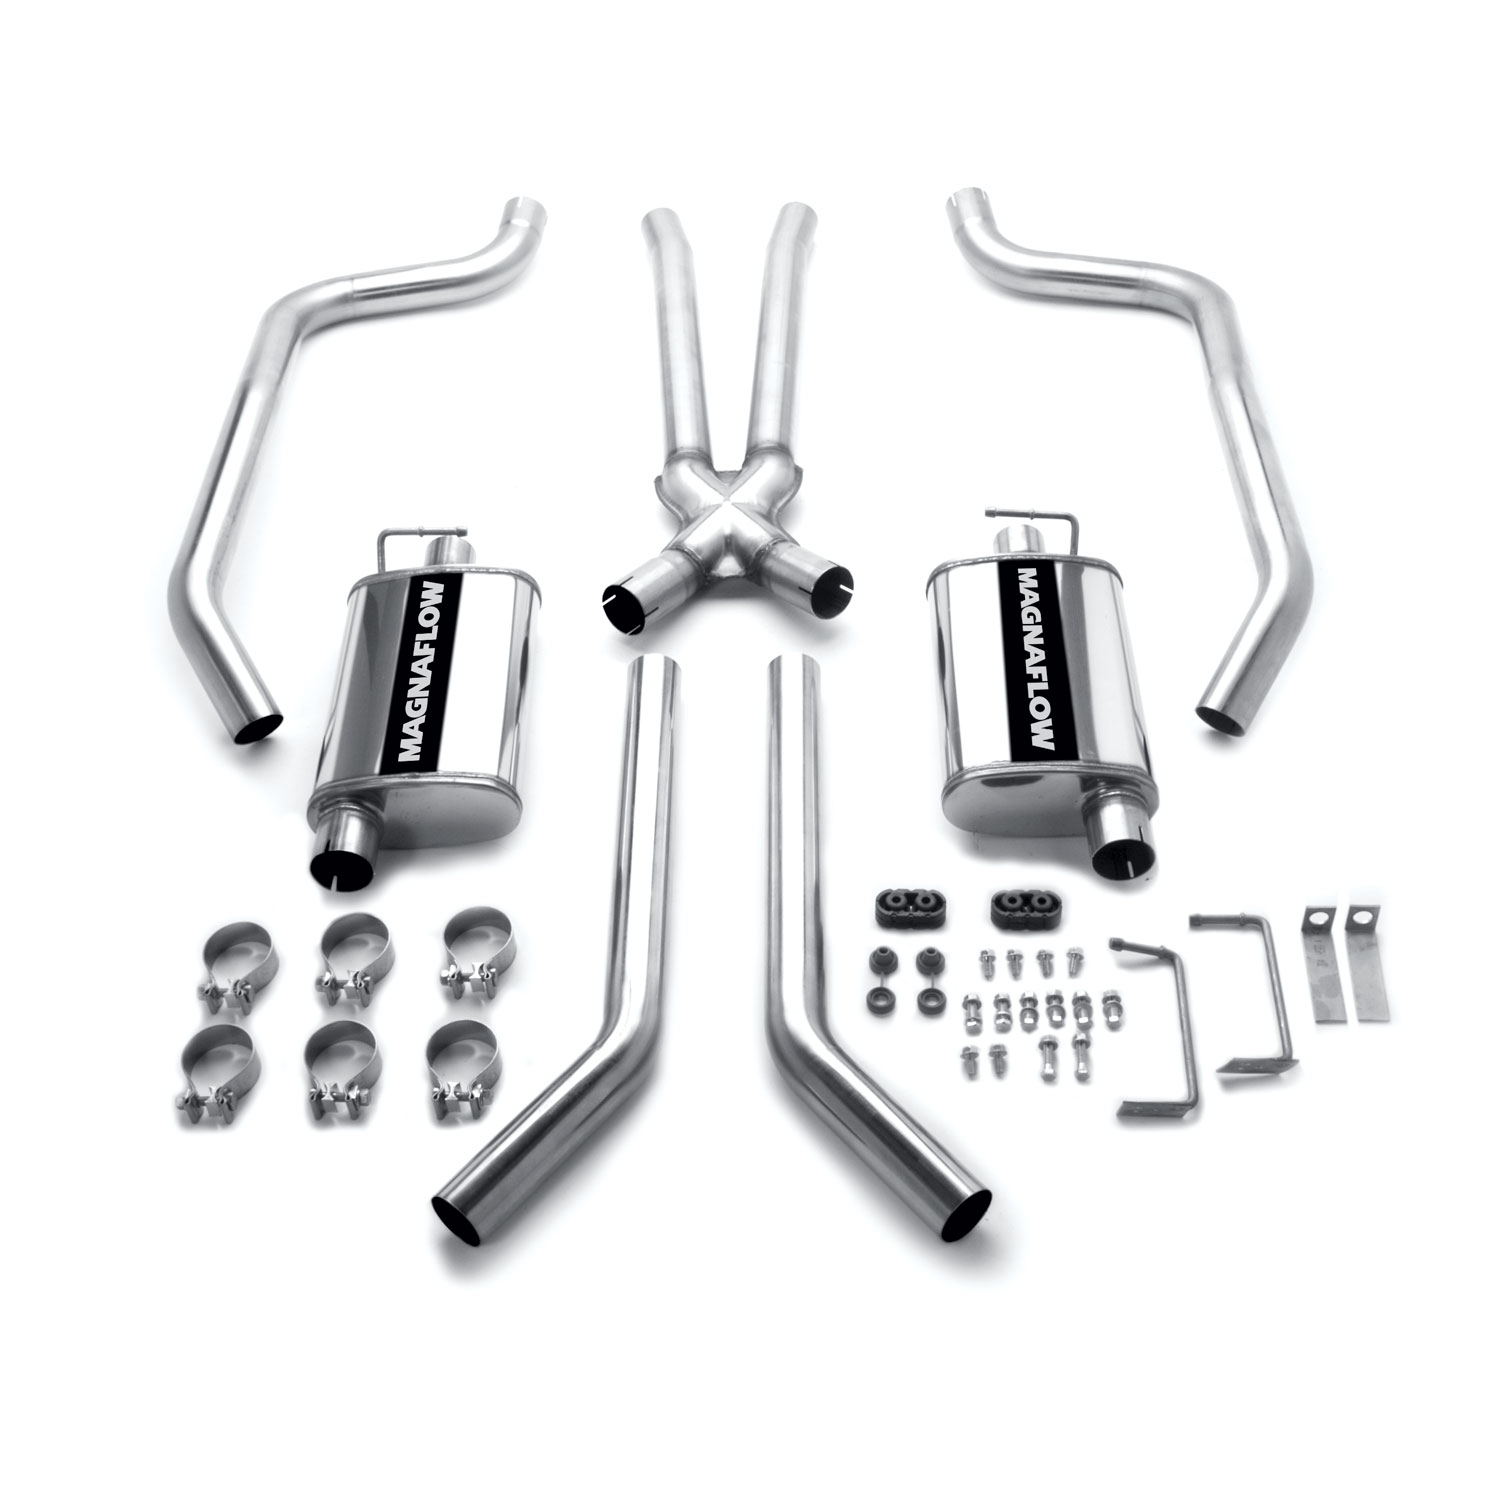 Magnaflow Stainless Steel Cat Back Performance